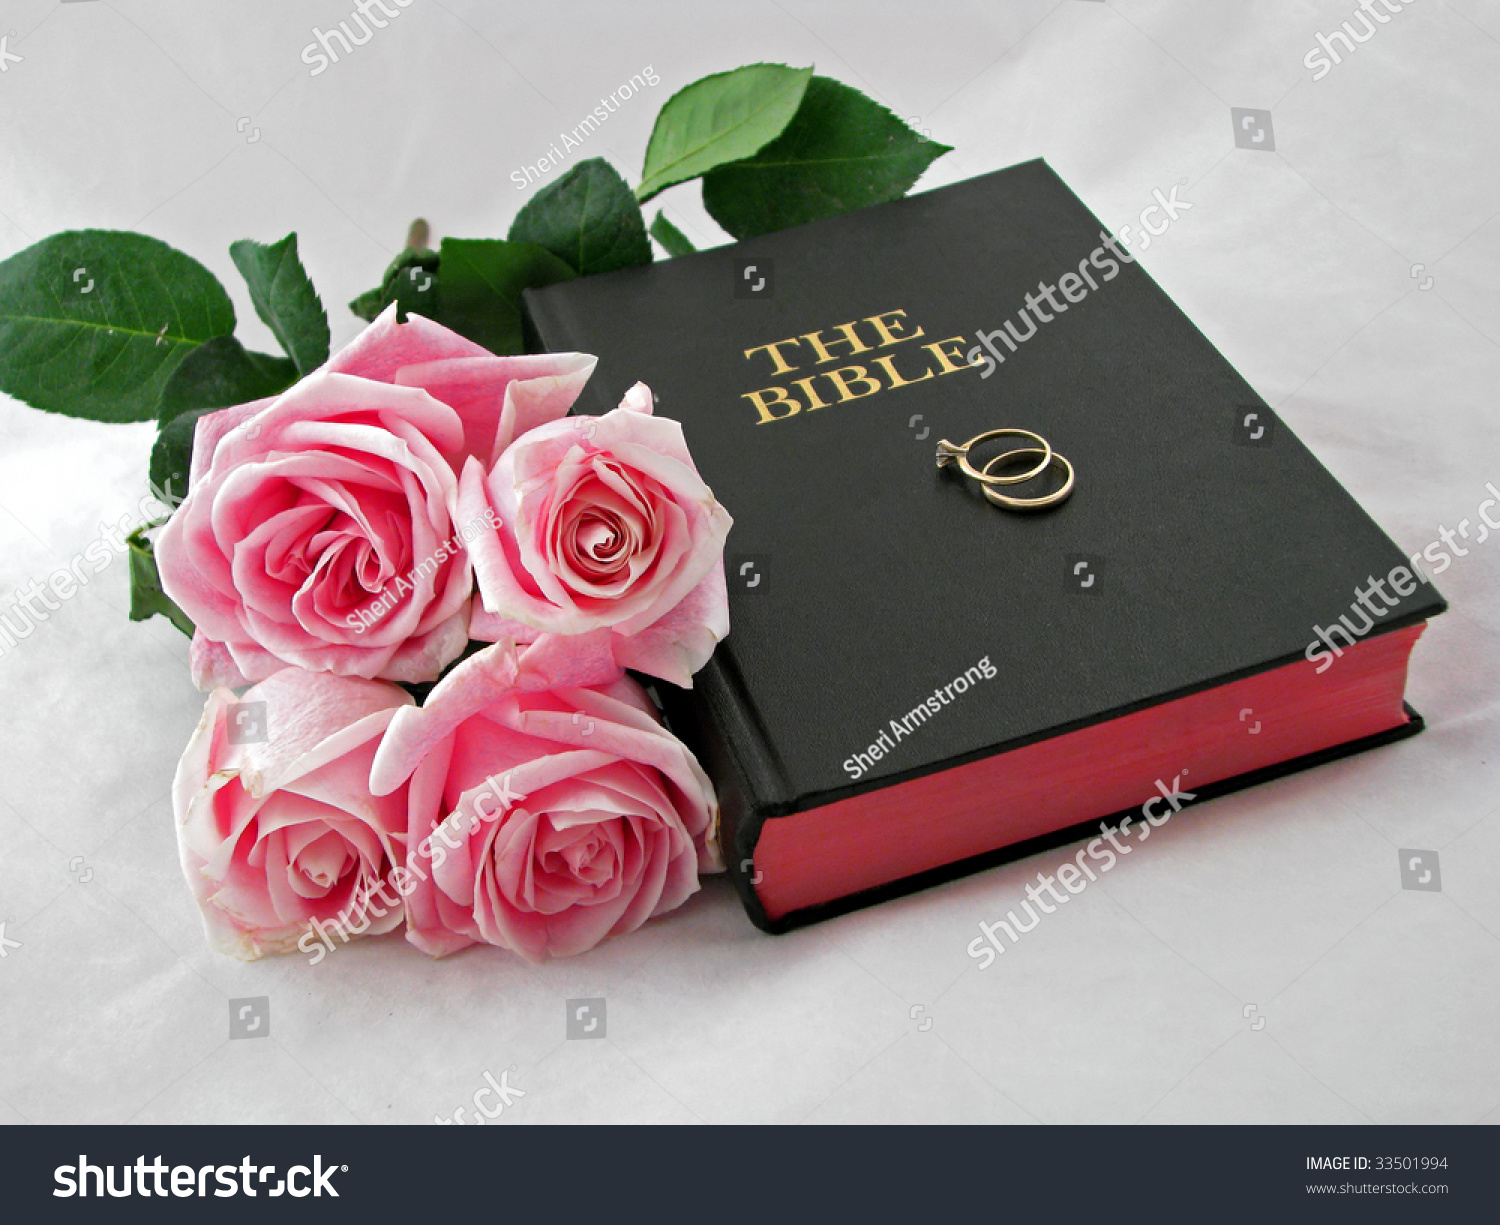 Pink Roses Wedding Rings On Bible Stock Photo (Edit Now) 33501994 ...